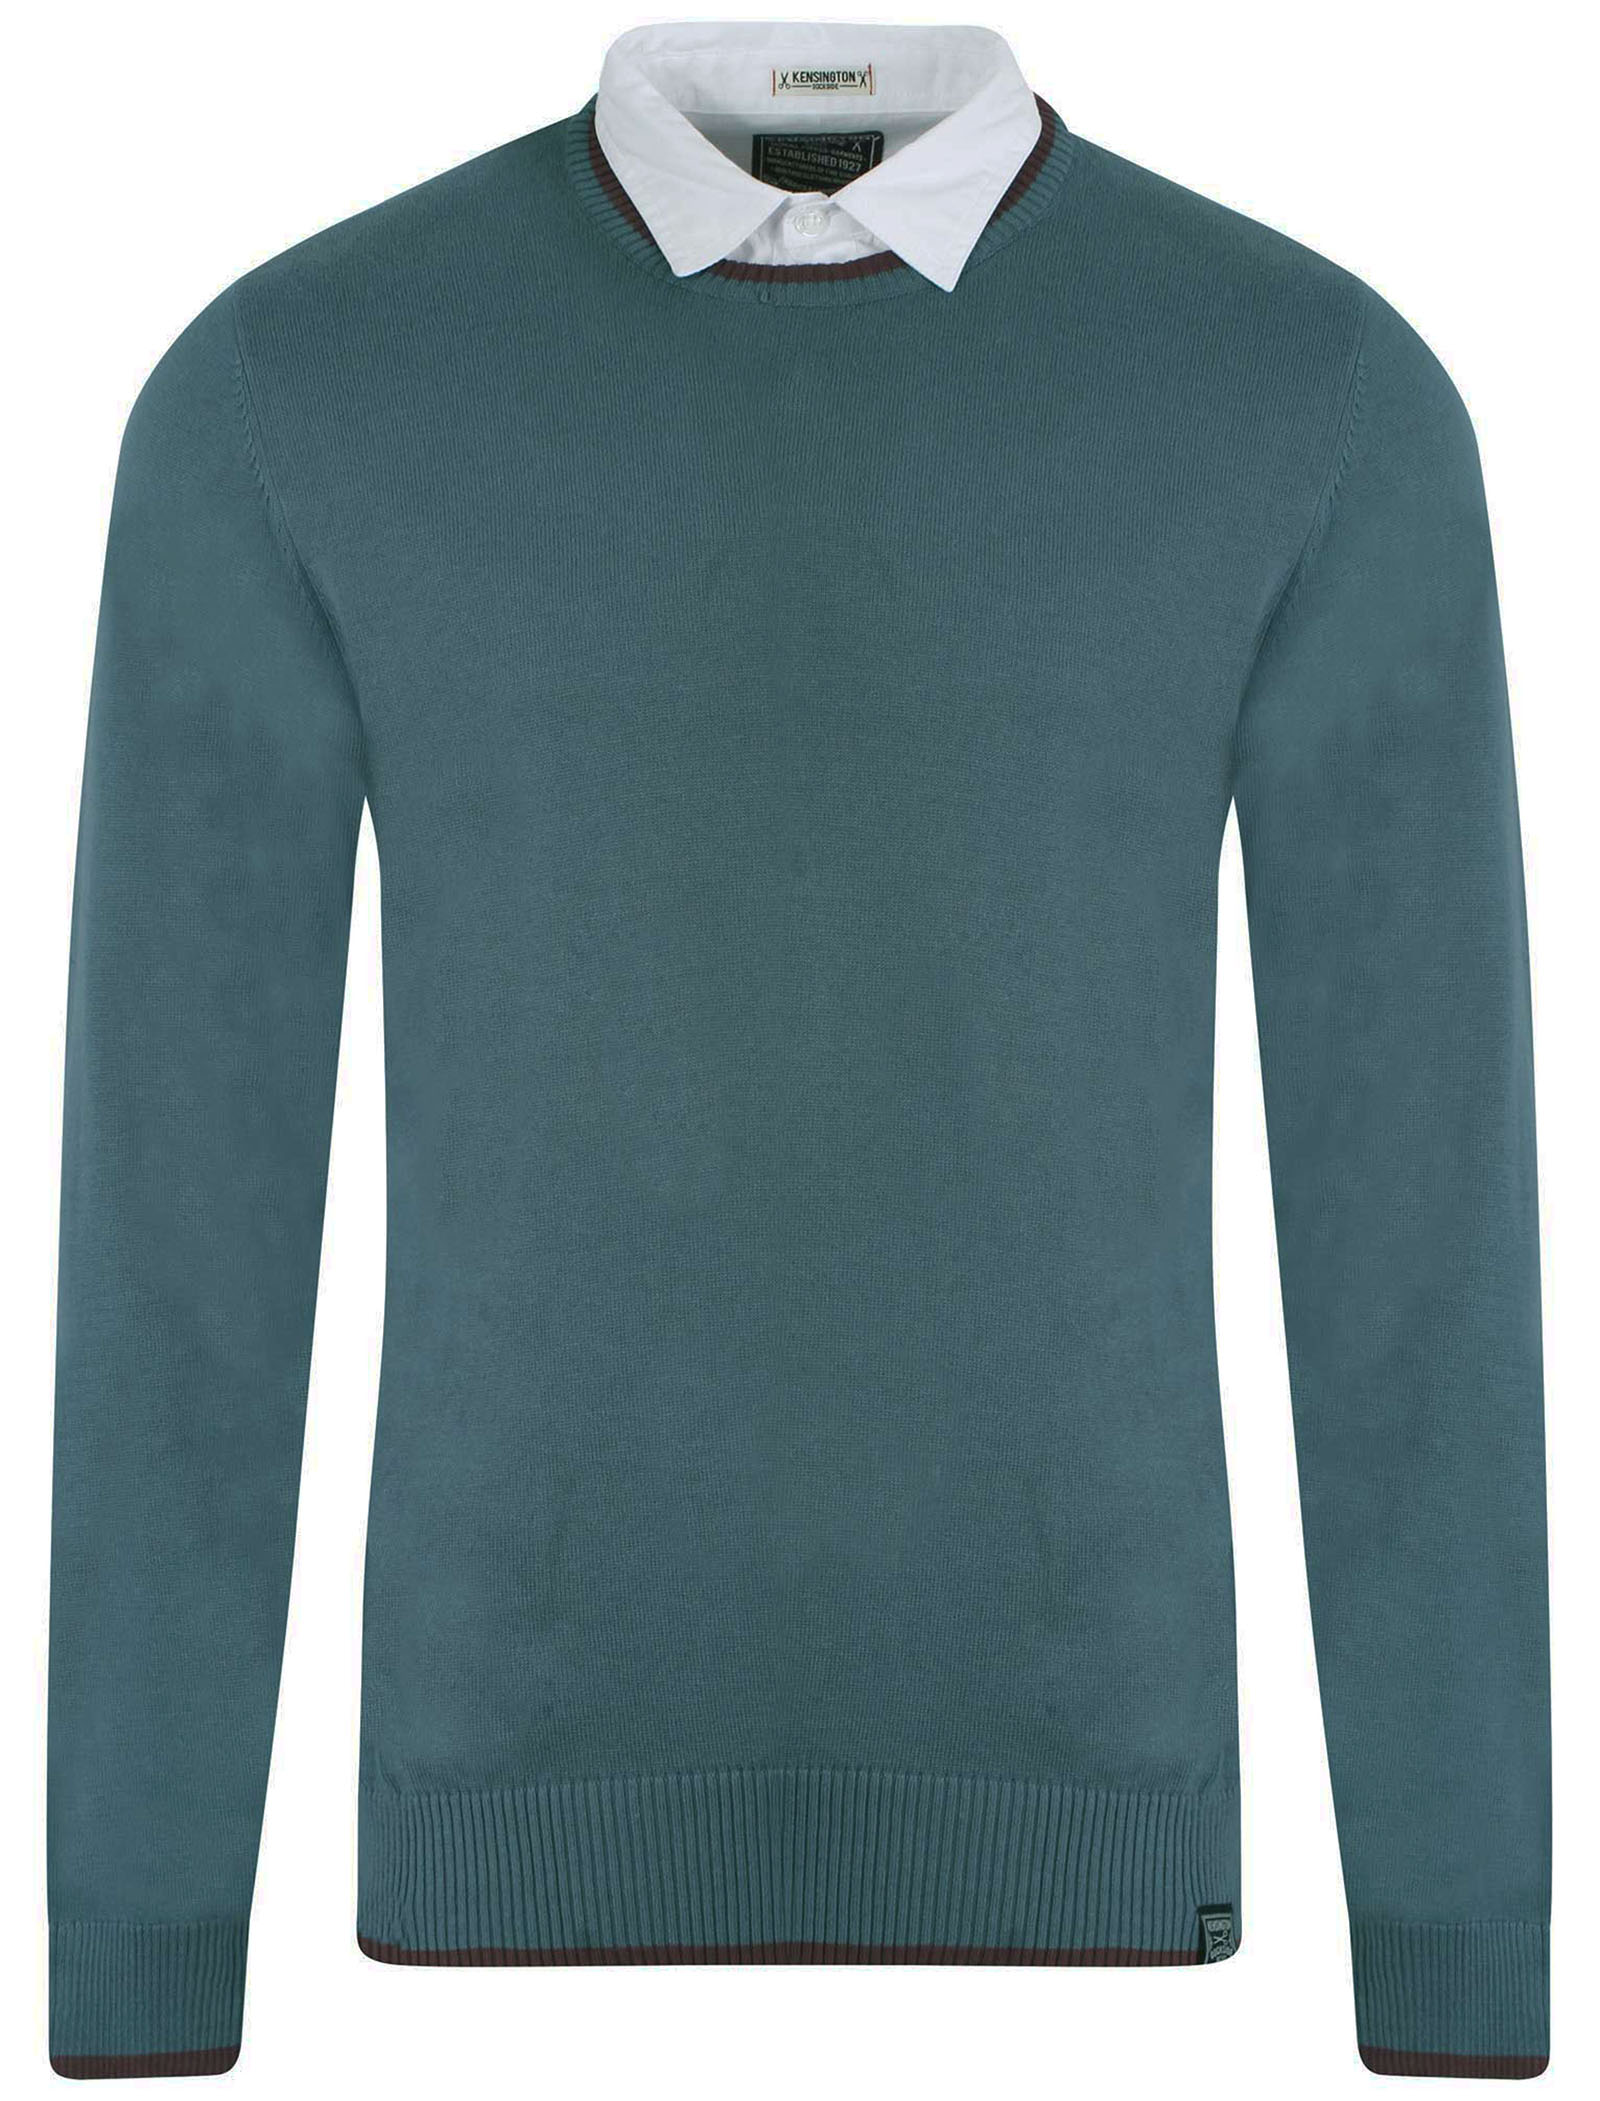 Kensington mens shirt insert white collar crew neck jumper for Crew neck sweater with collared shirt